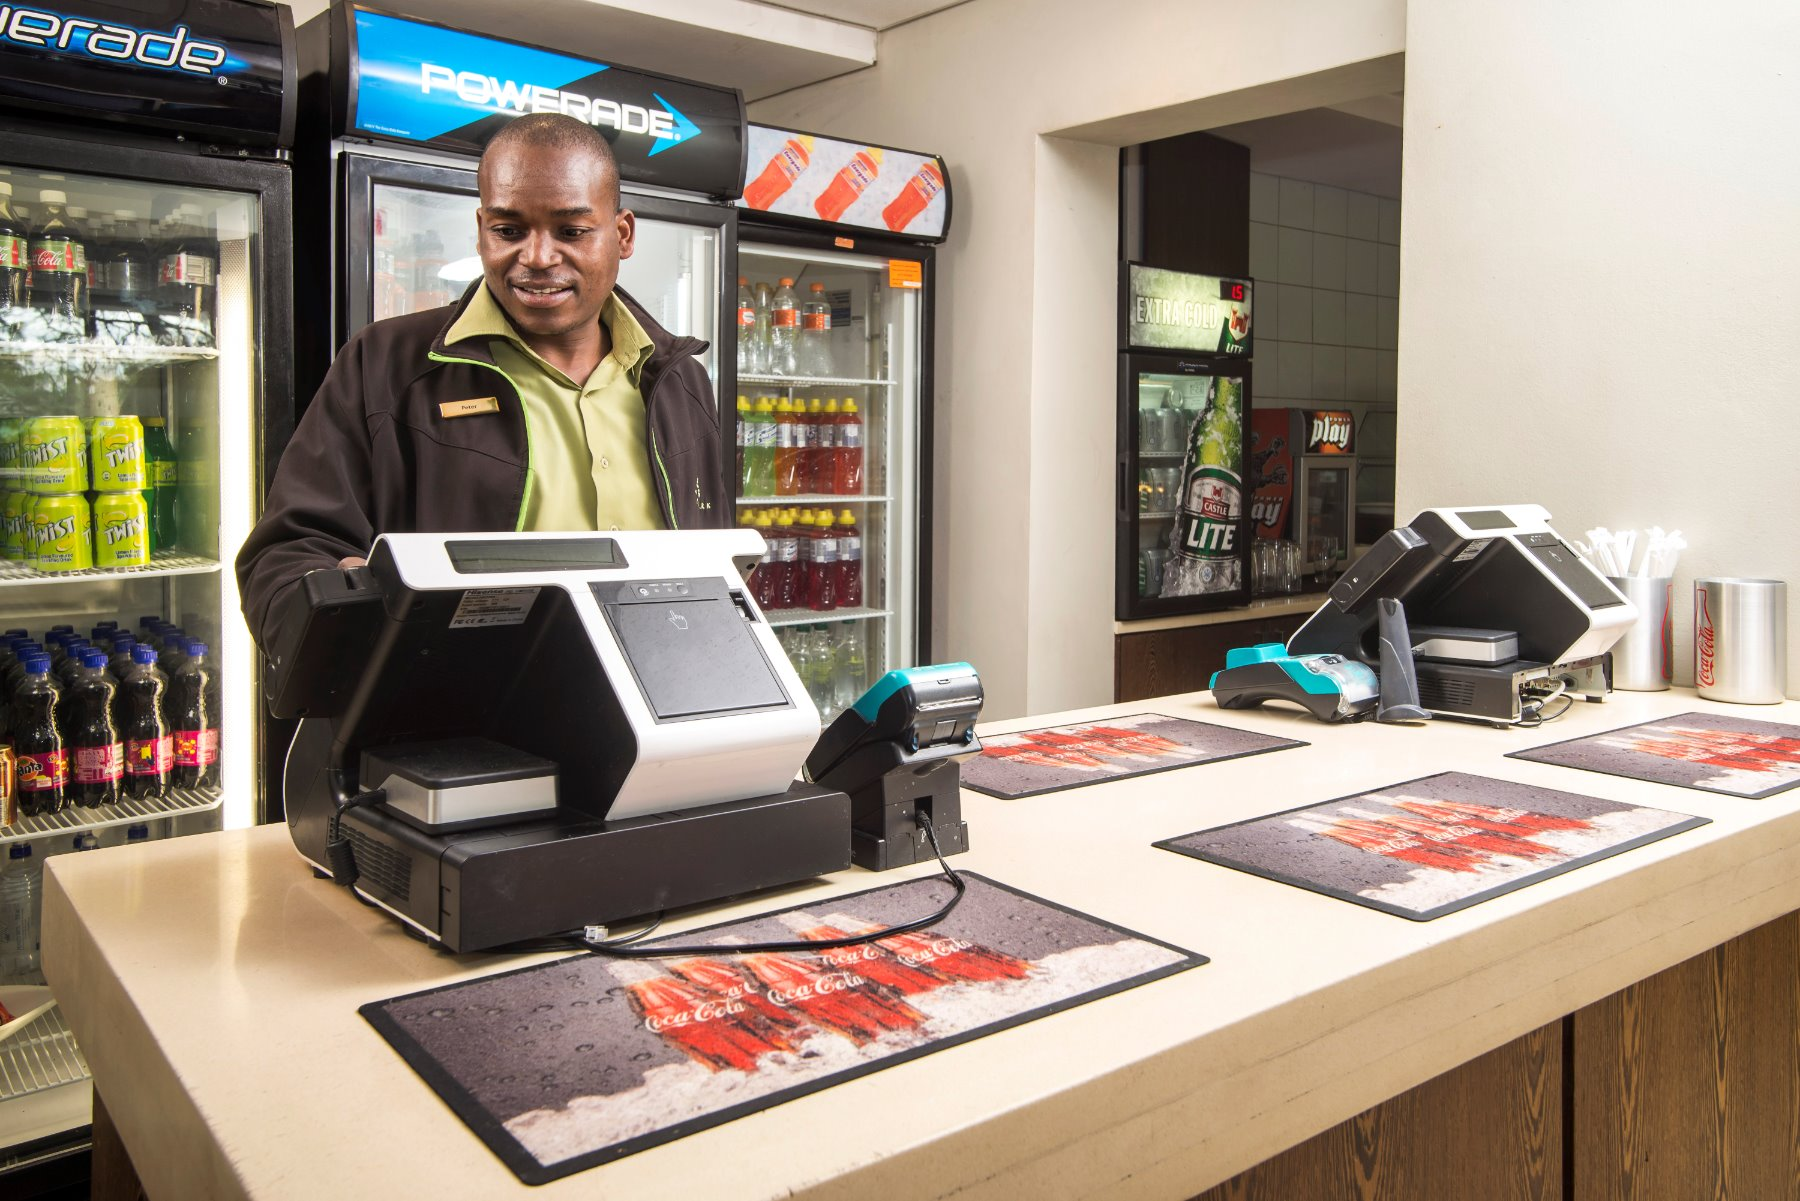 Affordable PoS Systems